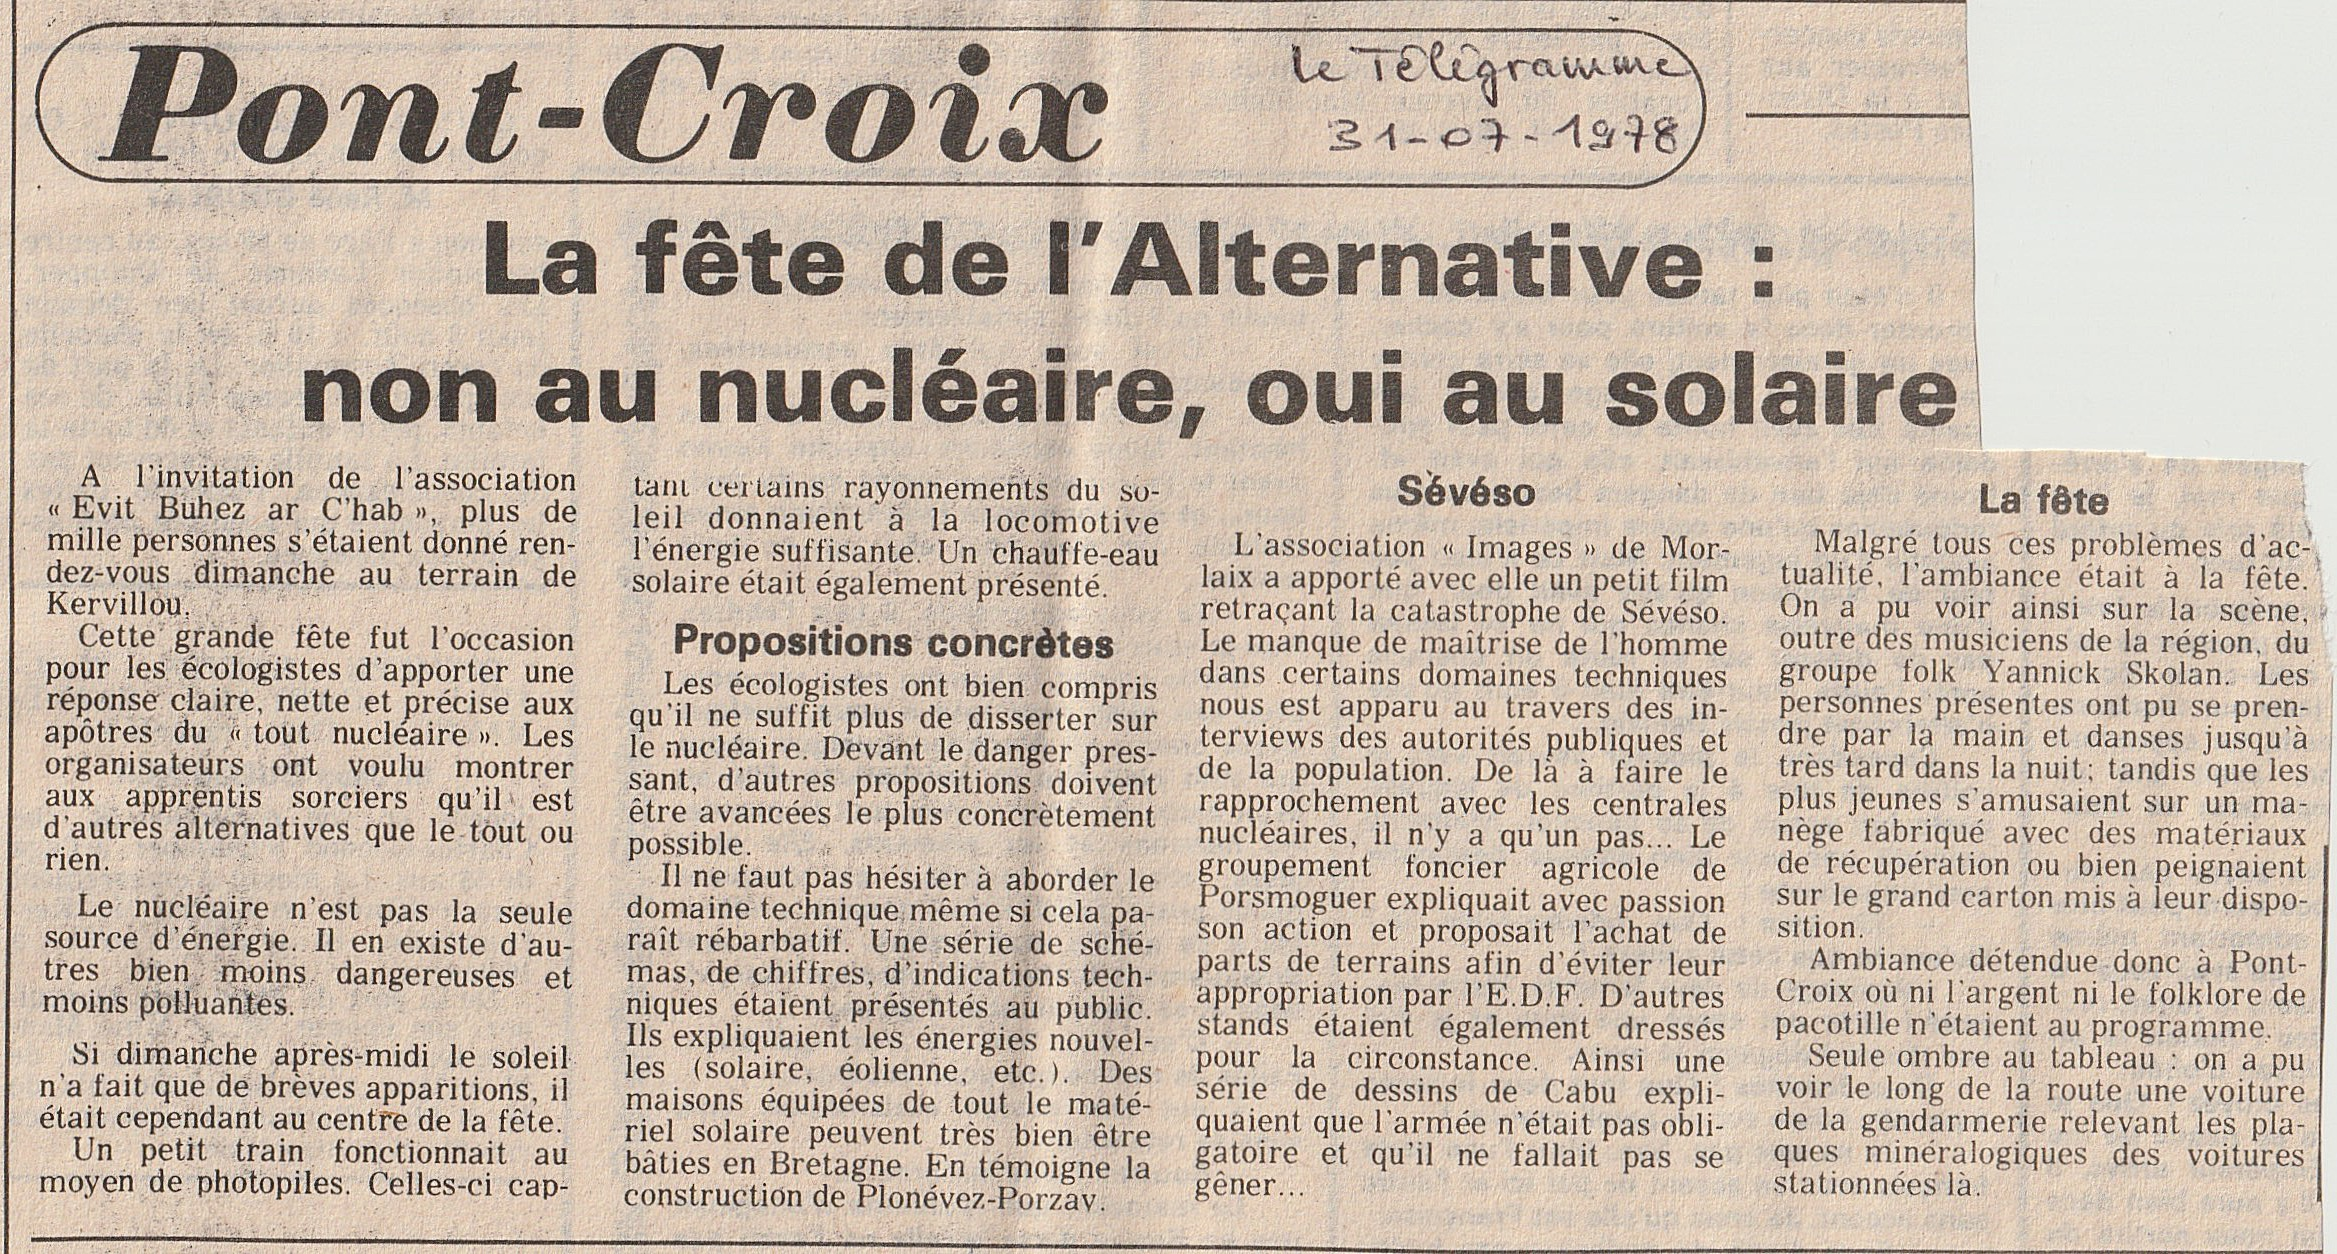 Fête de l'Alternative Le Télégramme 31-0